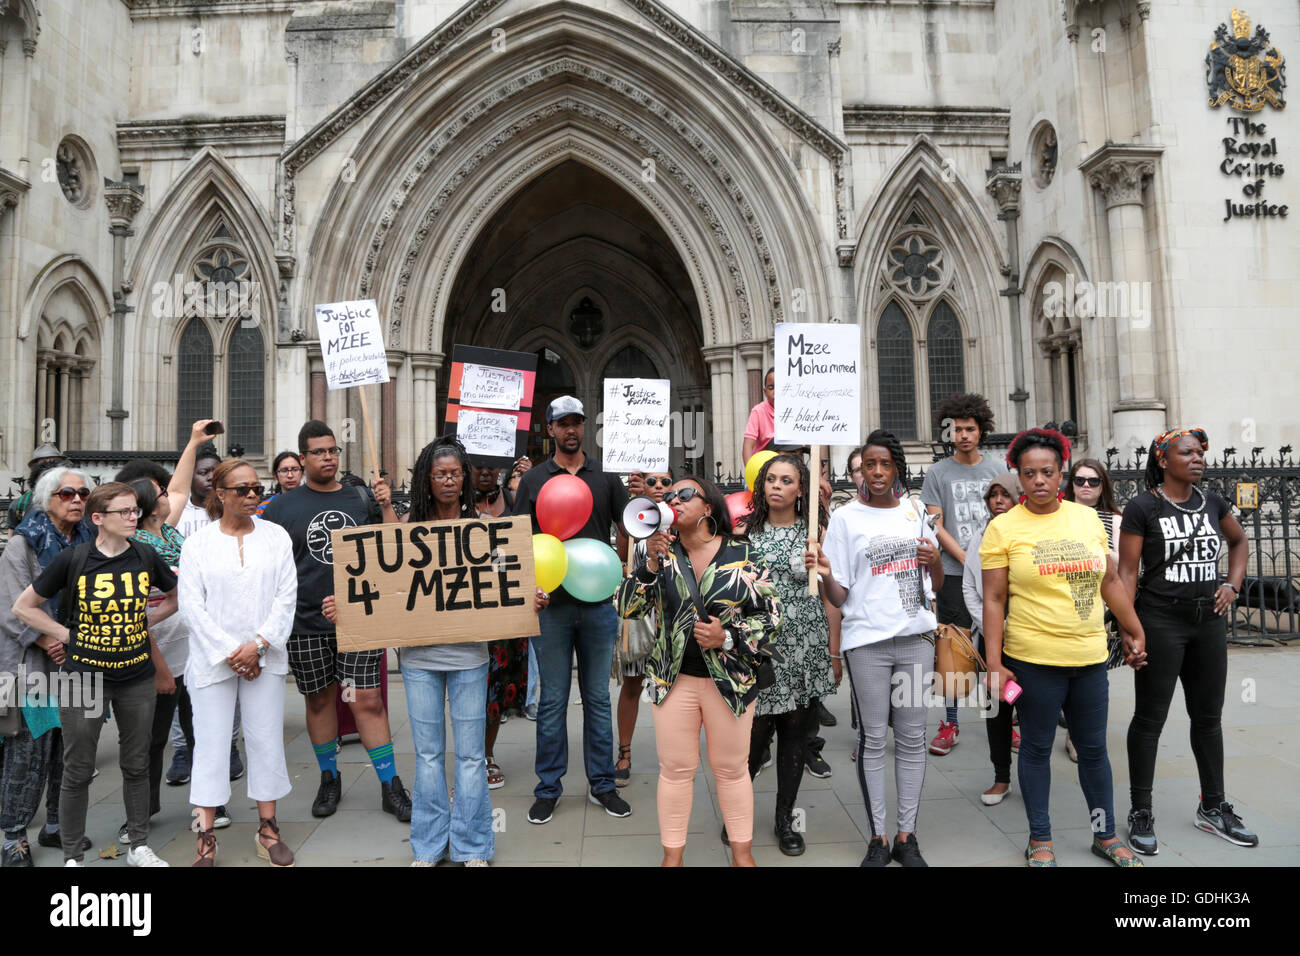 London, UK. 17th July, 2016. Ava Morgan speaks as people with banners and placards stand out side the Royal Courts - Stock Image